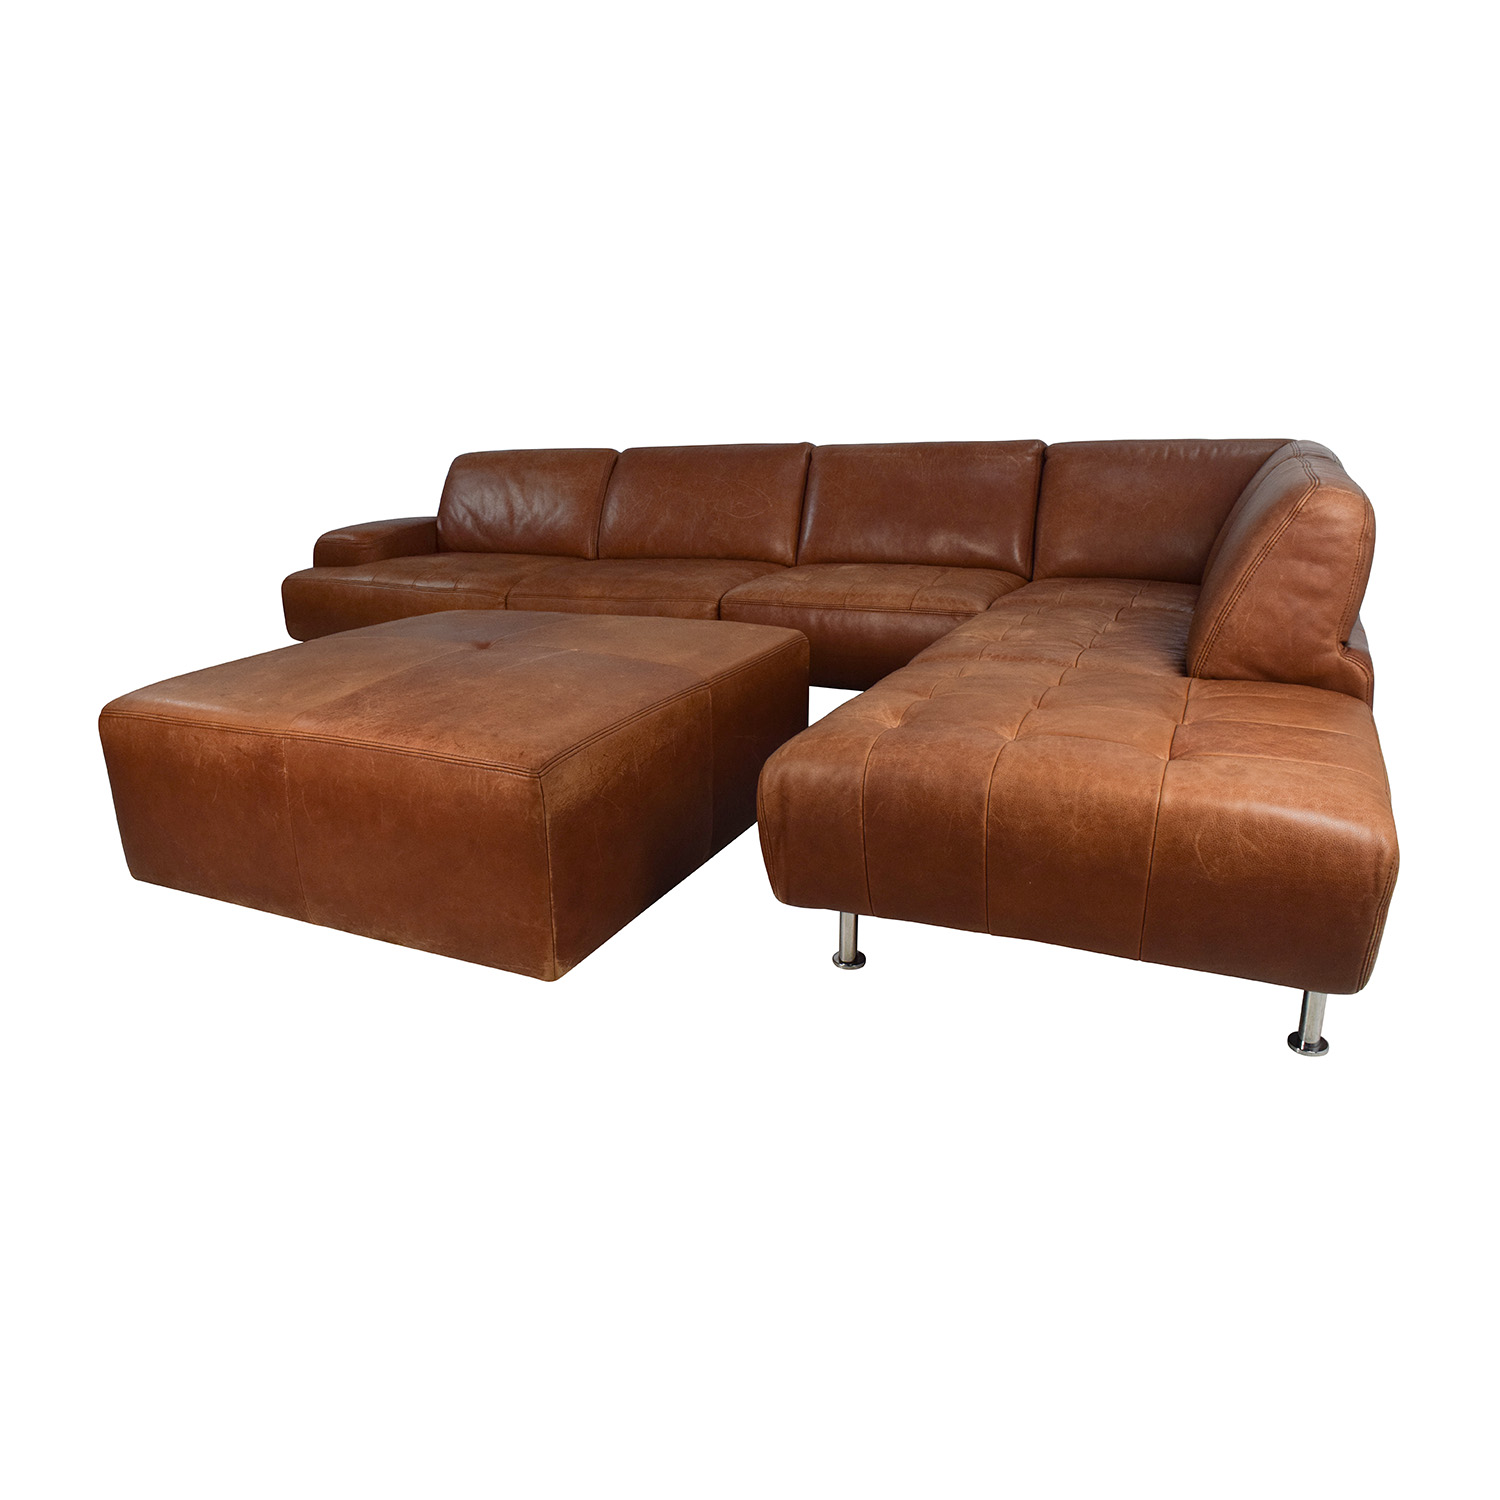 53 OFF WSchillig W Schillig Leather Sectional And Ottoman Sofas